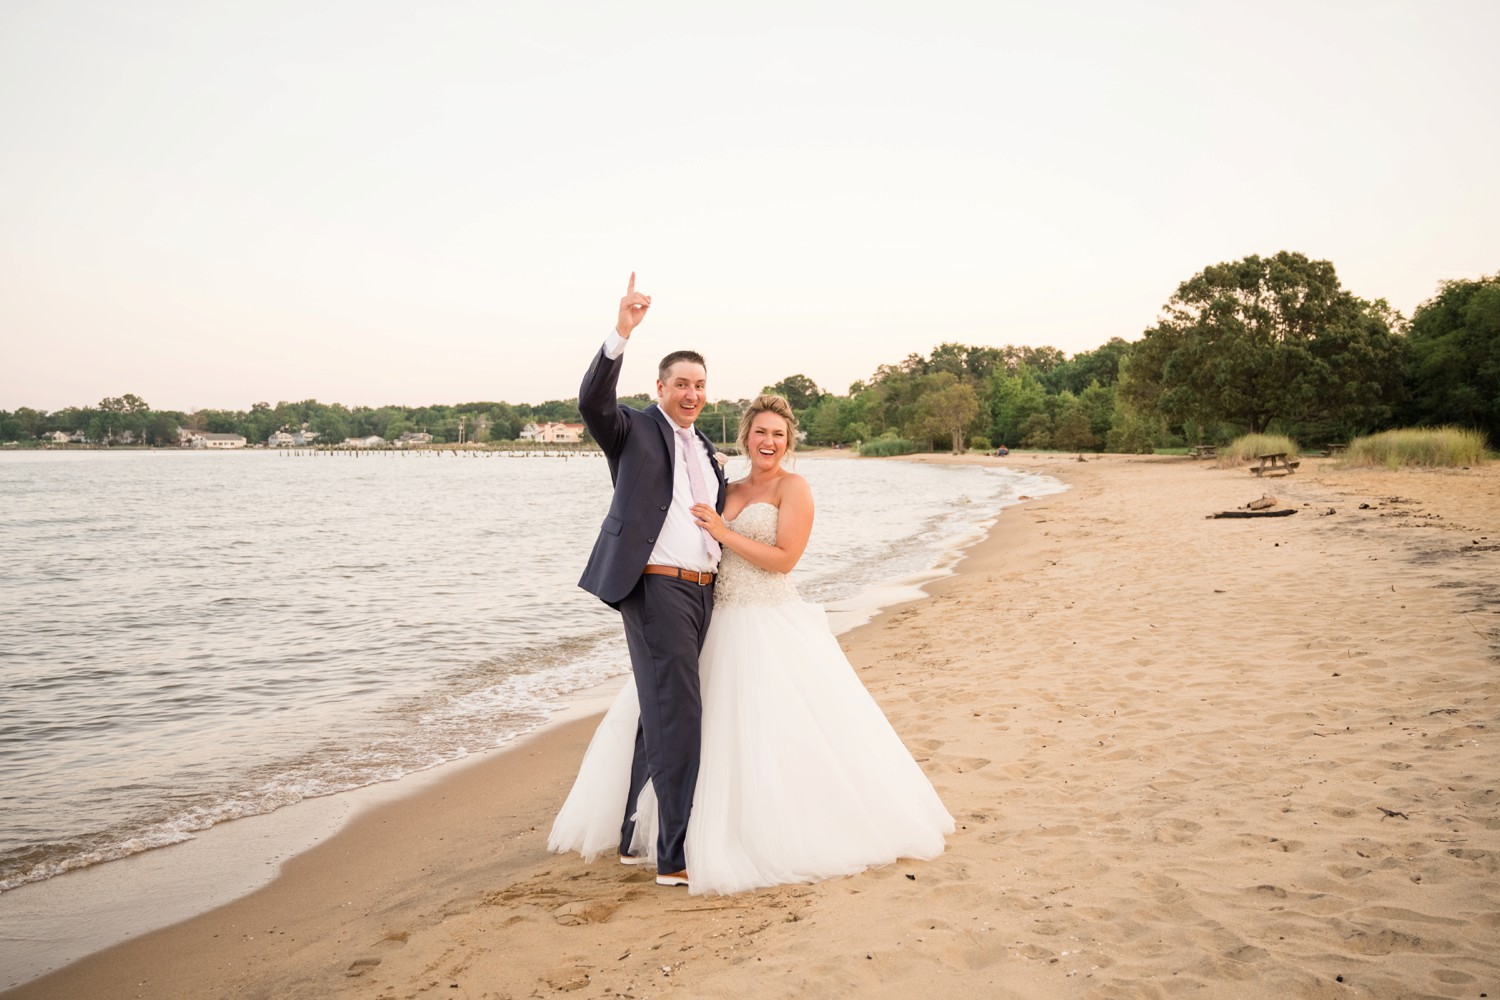 Annapolis newlyweds on the beach